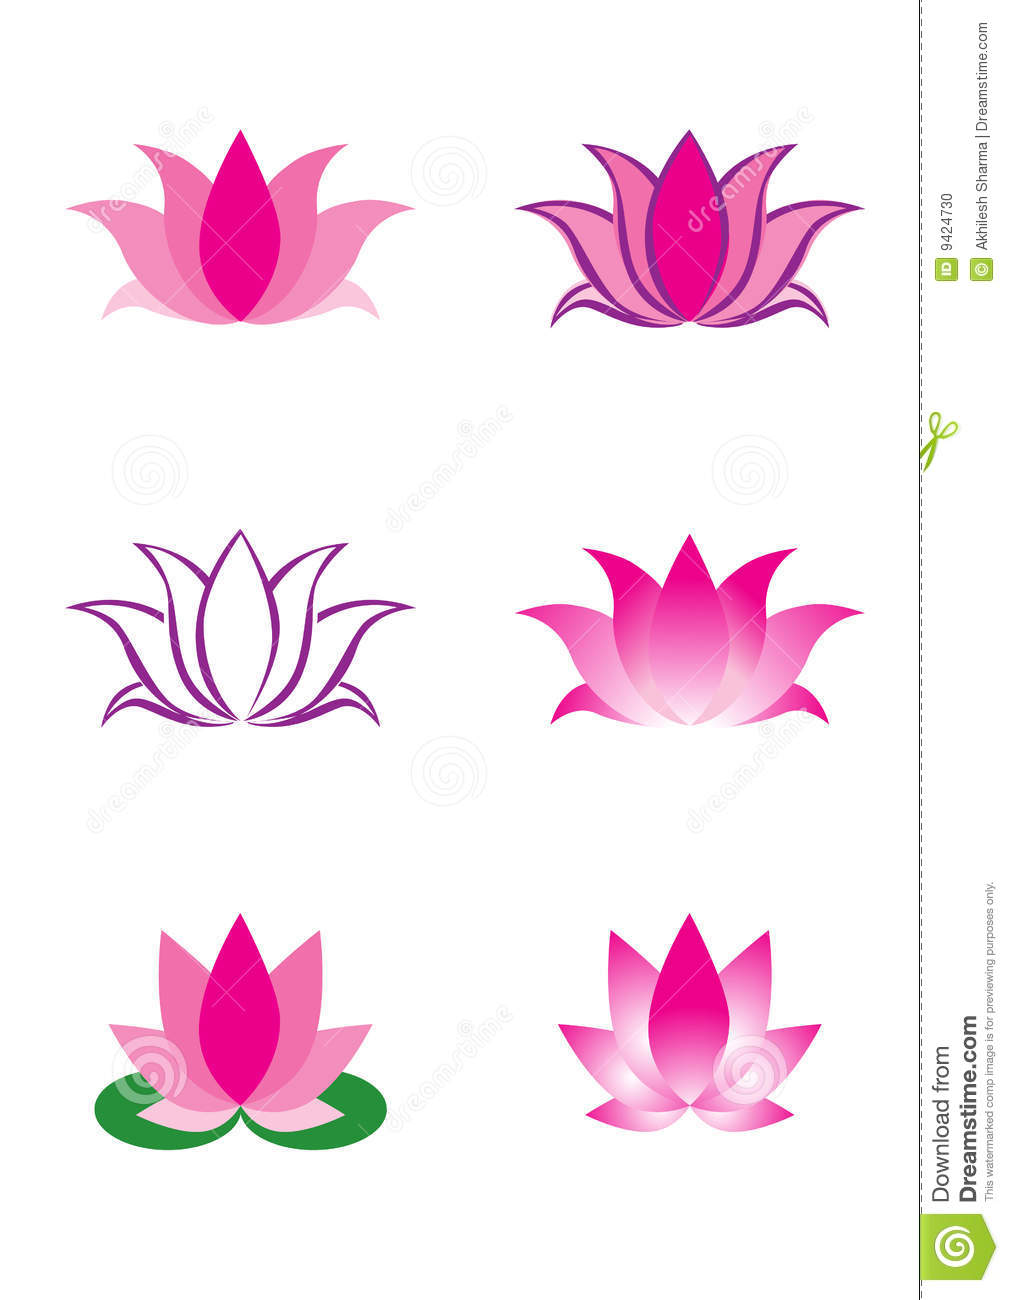 Illustration Of Lotus Flower Stock Photo - Image: 9424730